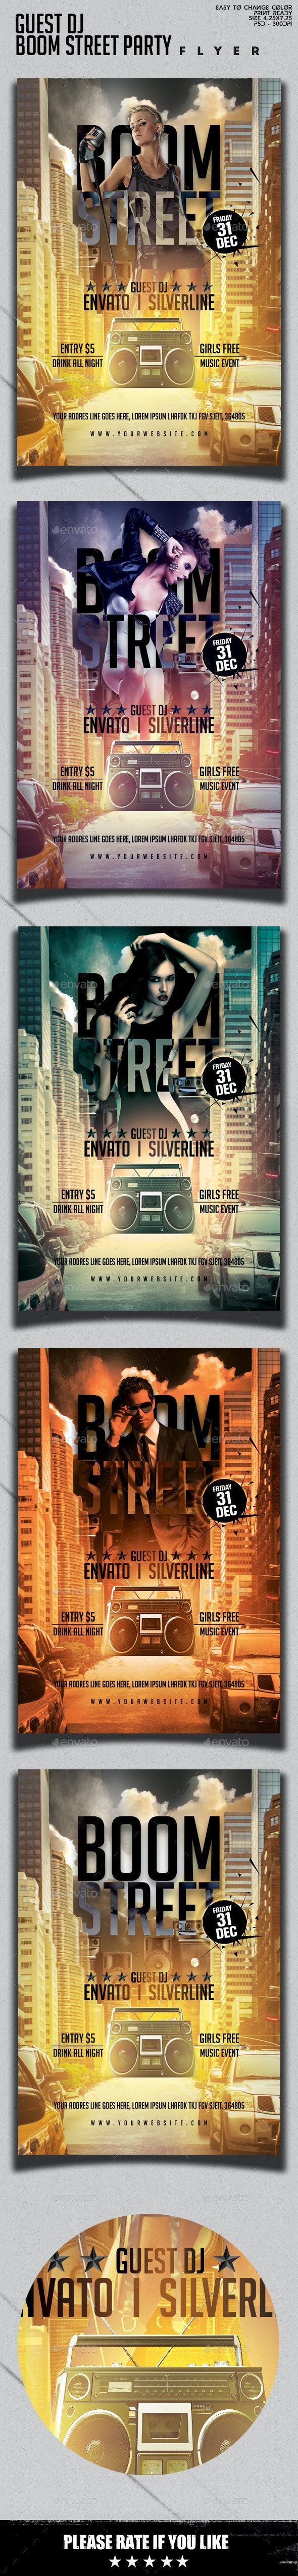 Guest Dj Boom Street Party Flyer Template - Clubs & Parties Events